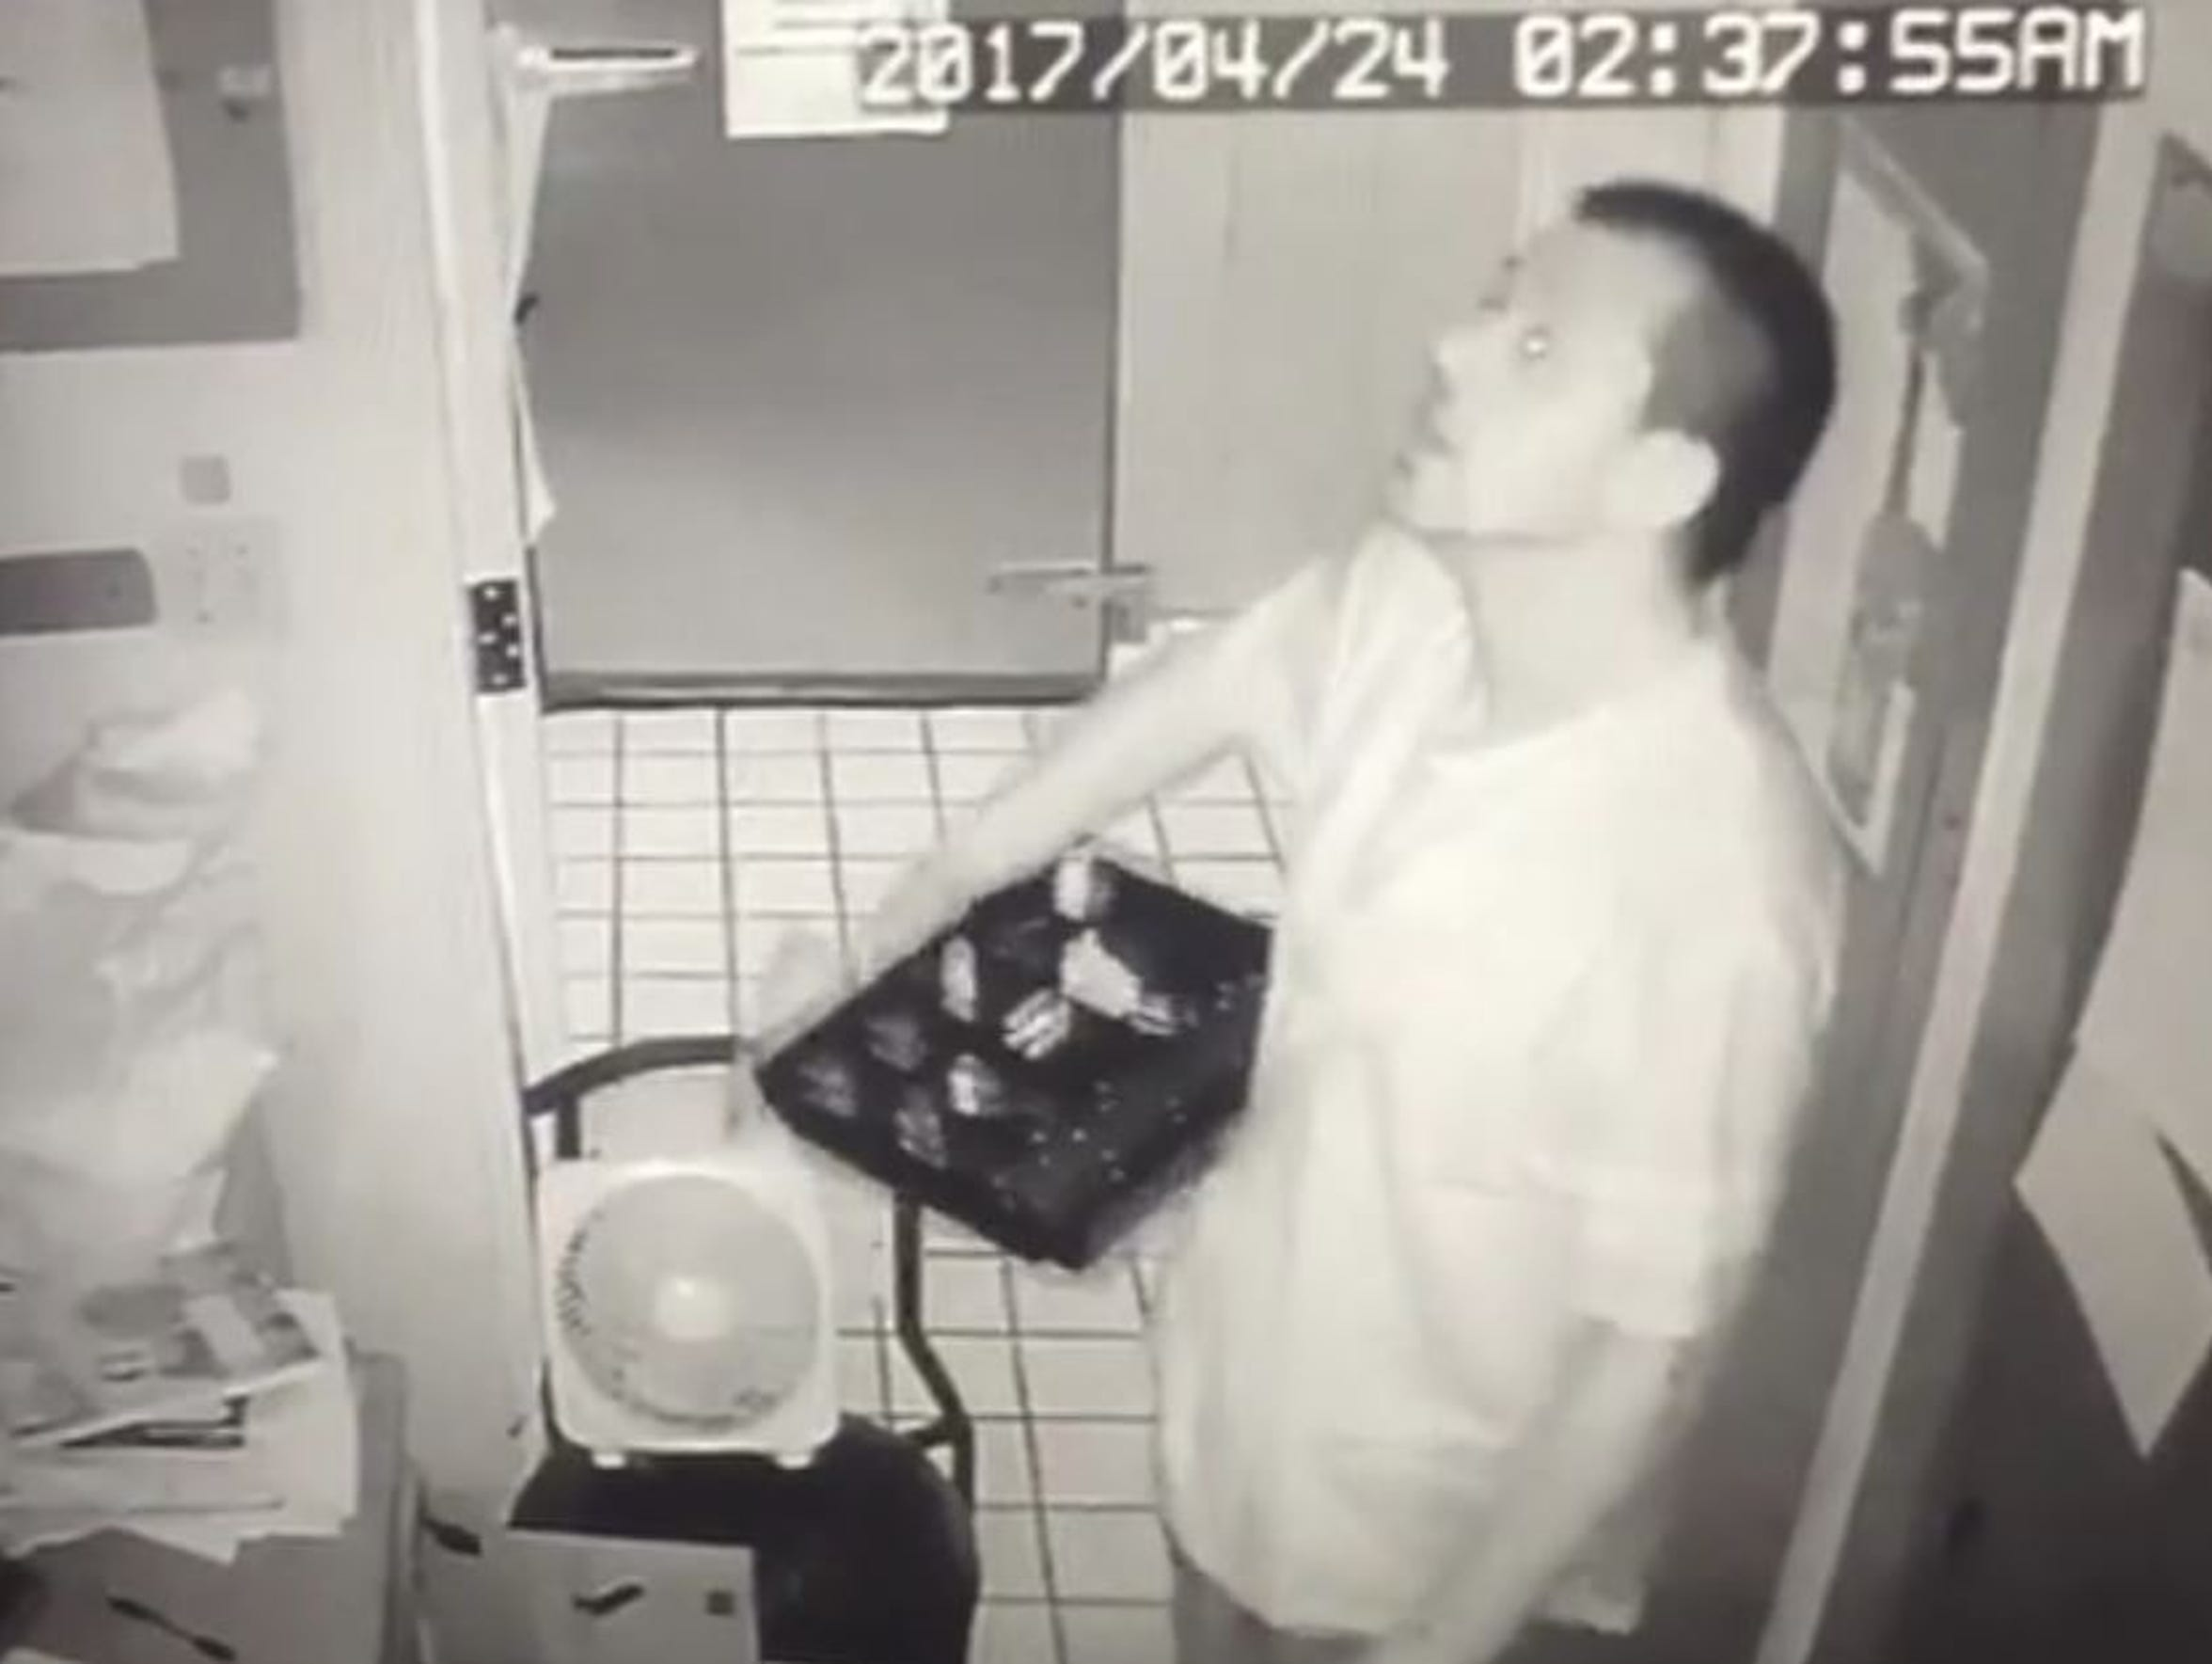 A burglar, identified by police as former Oscar's employee